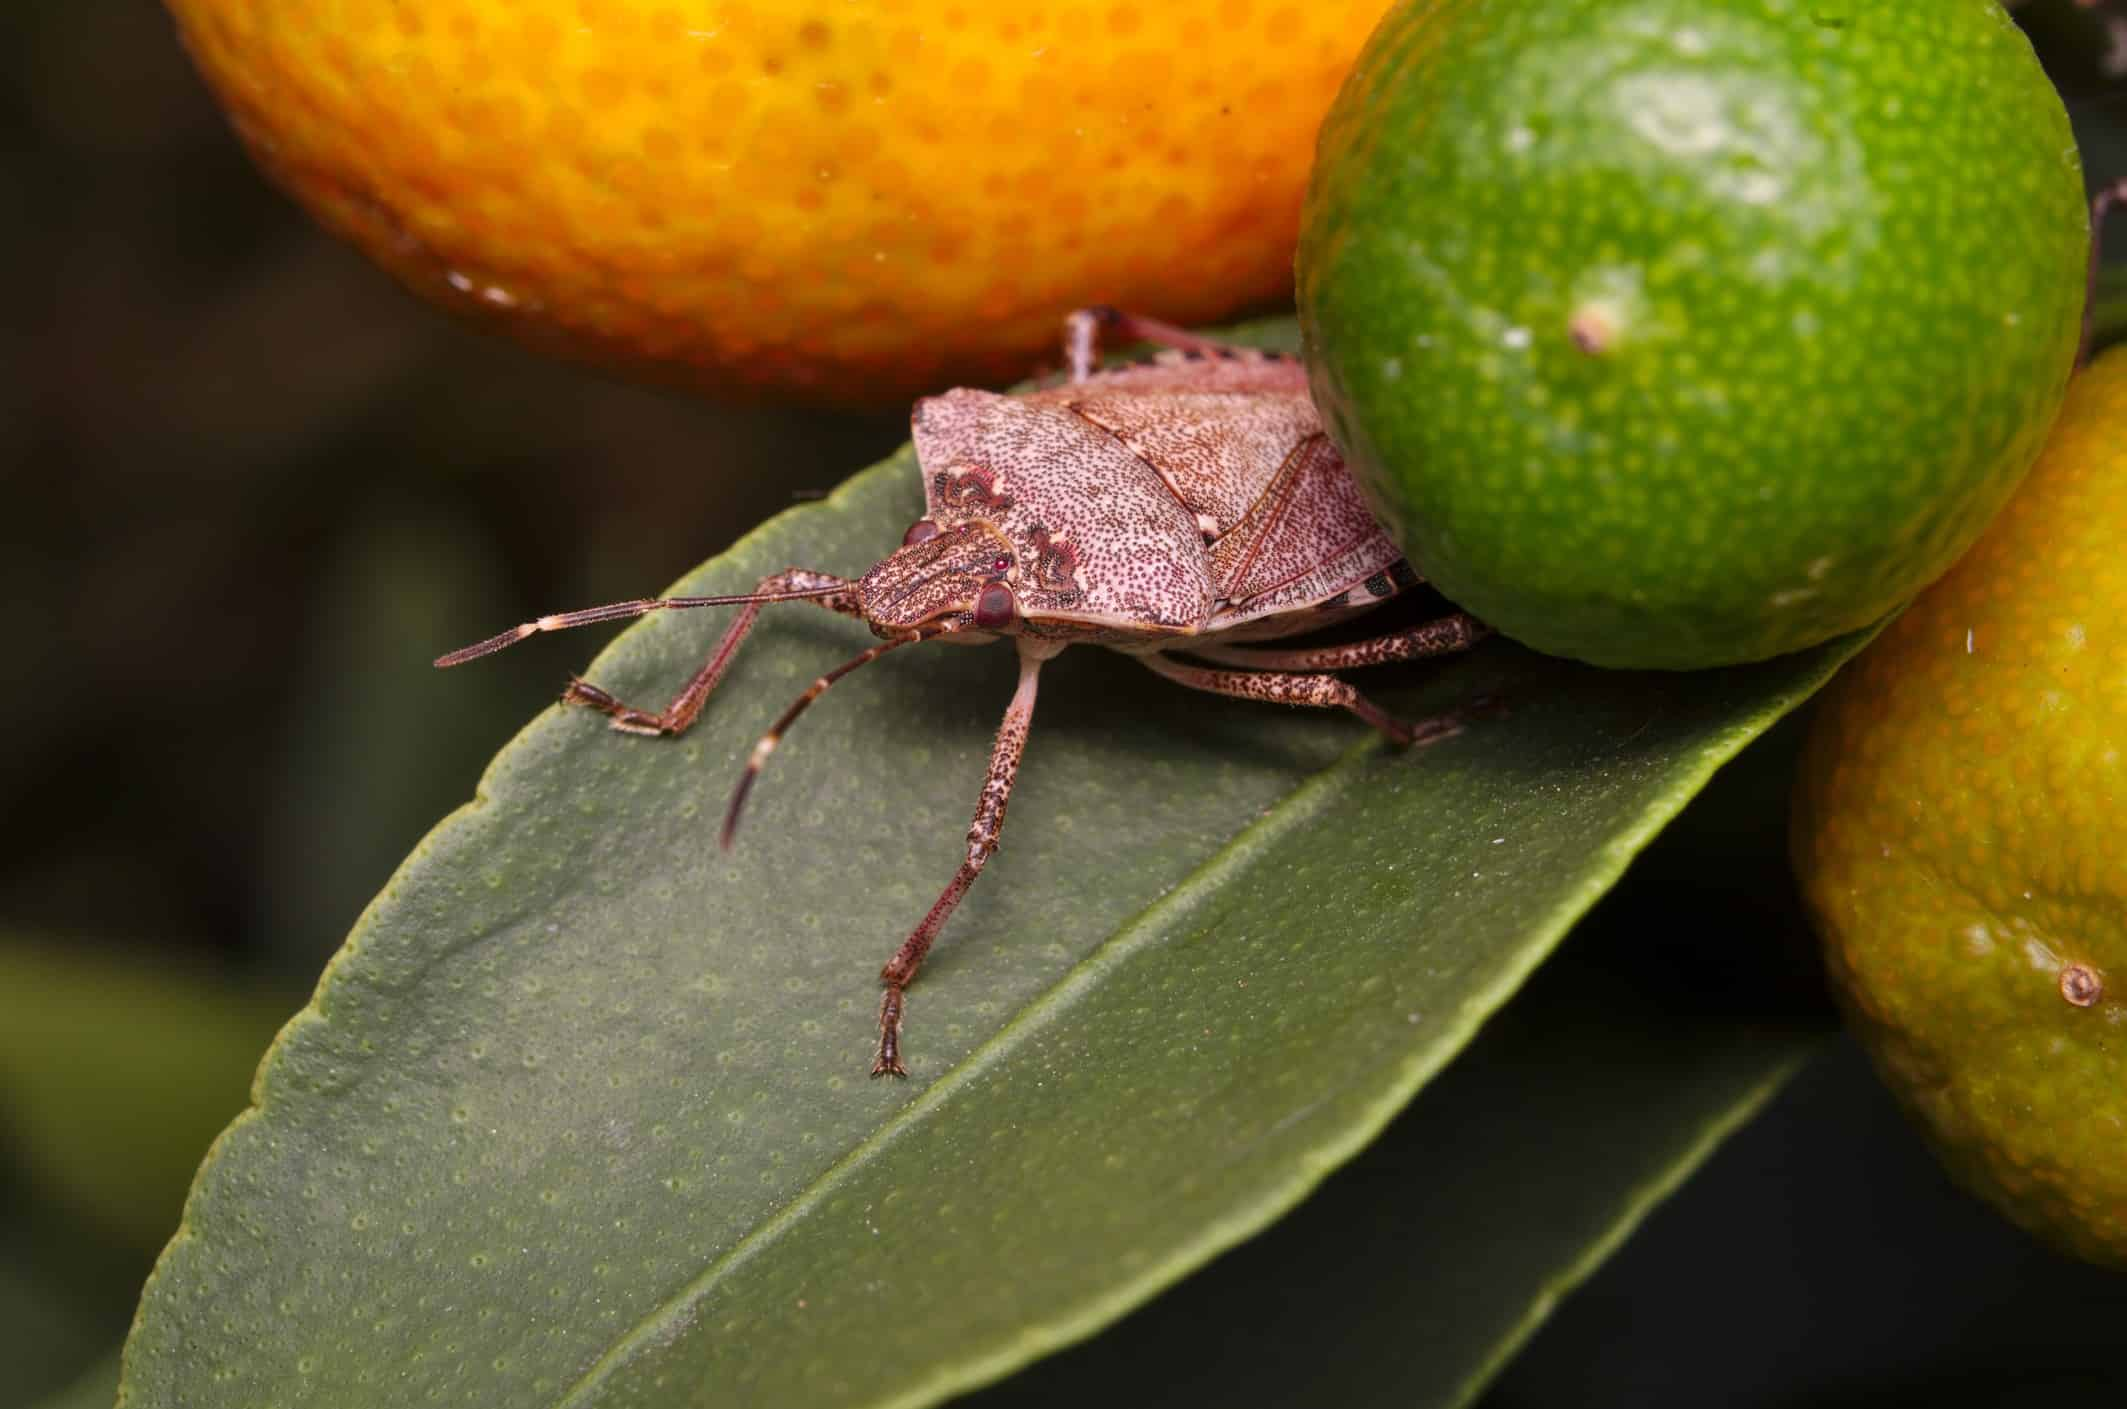 Australia puts its foot down on the brown marmorated stink bug